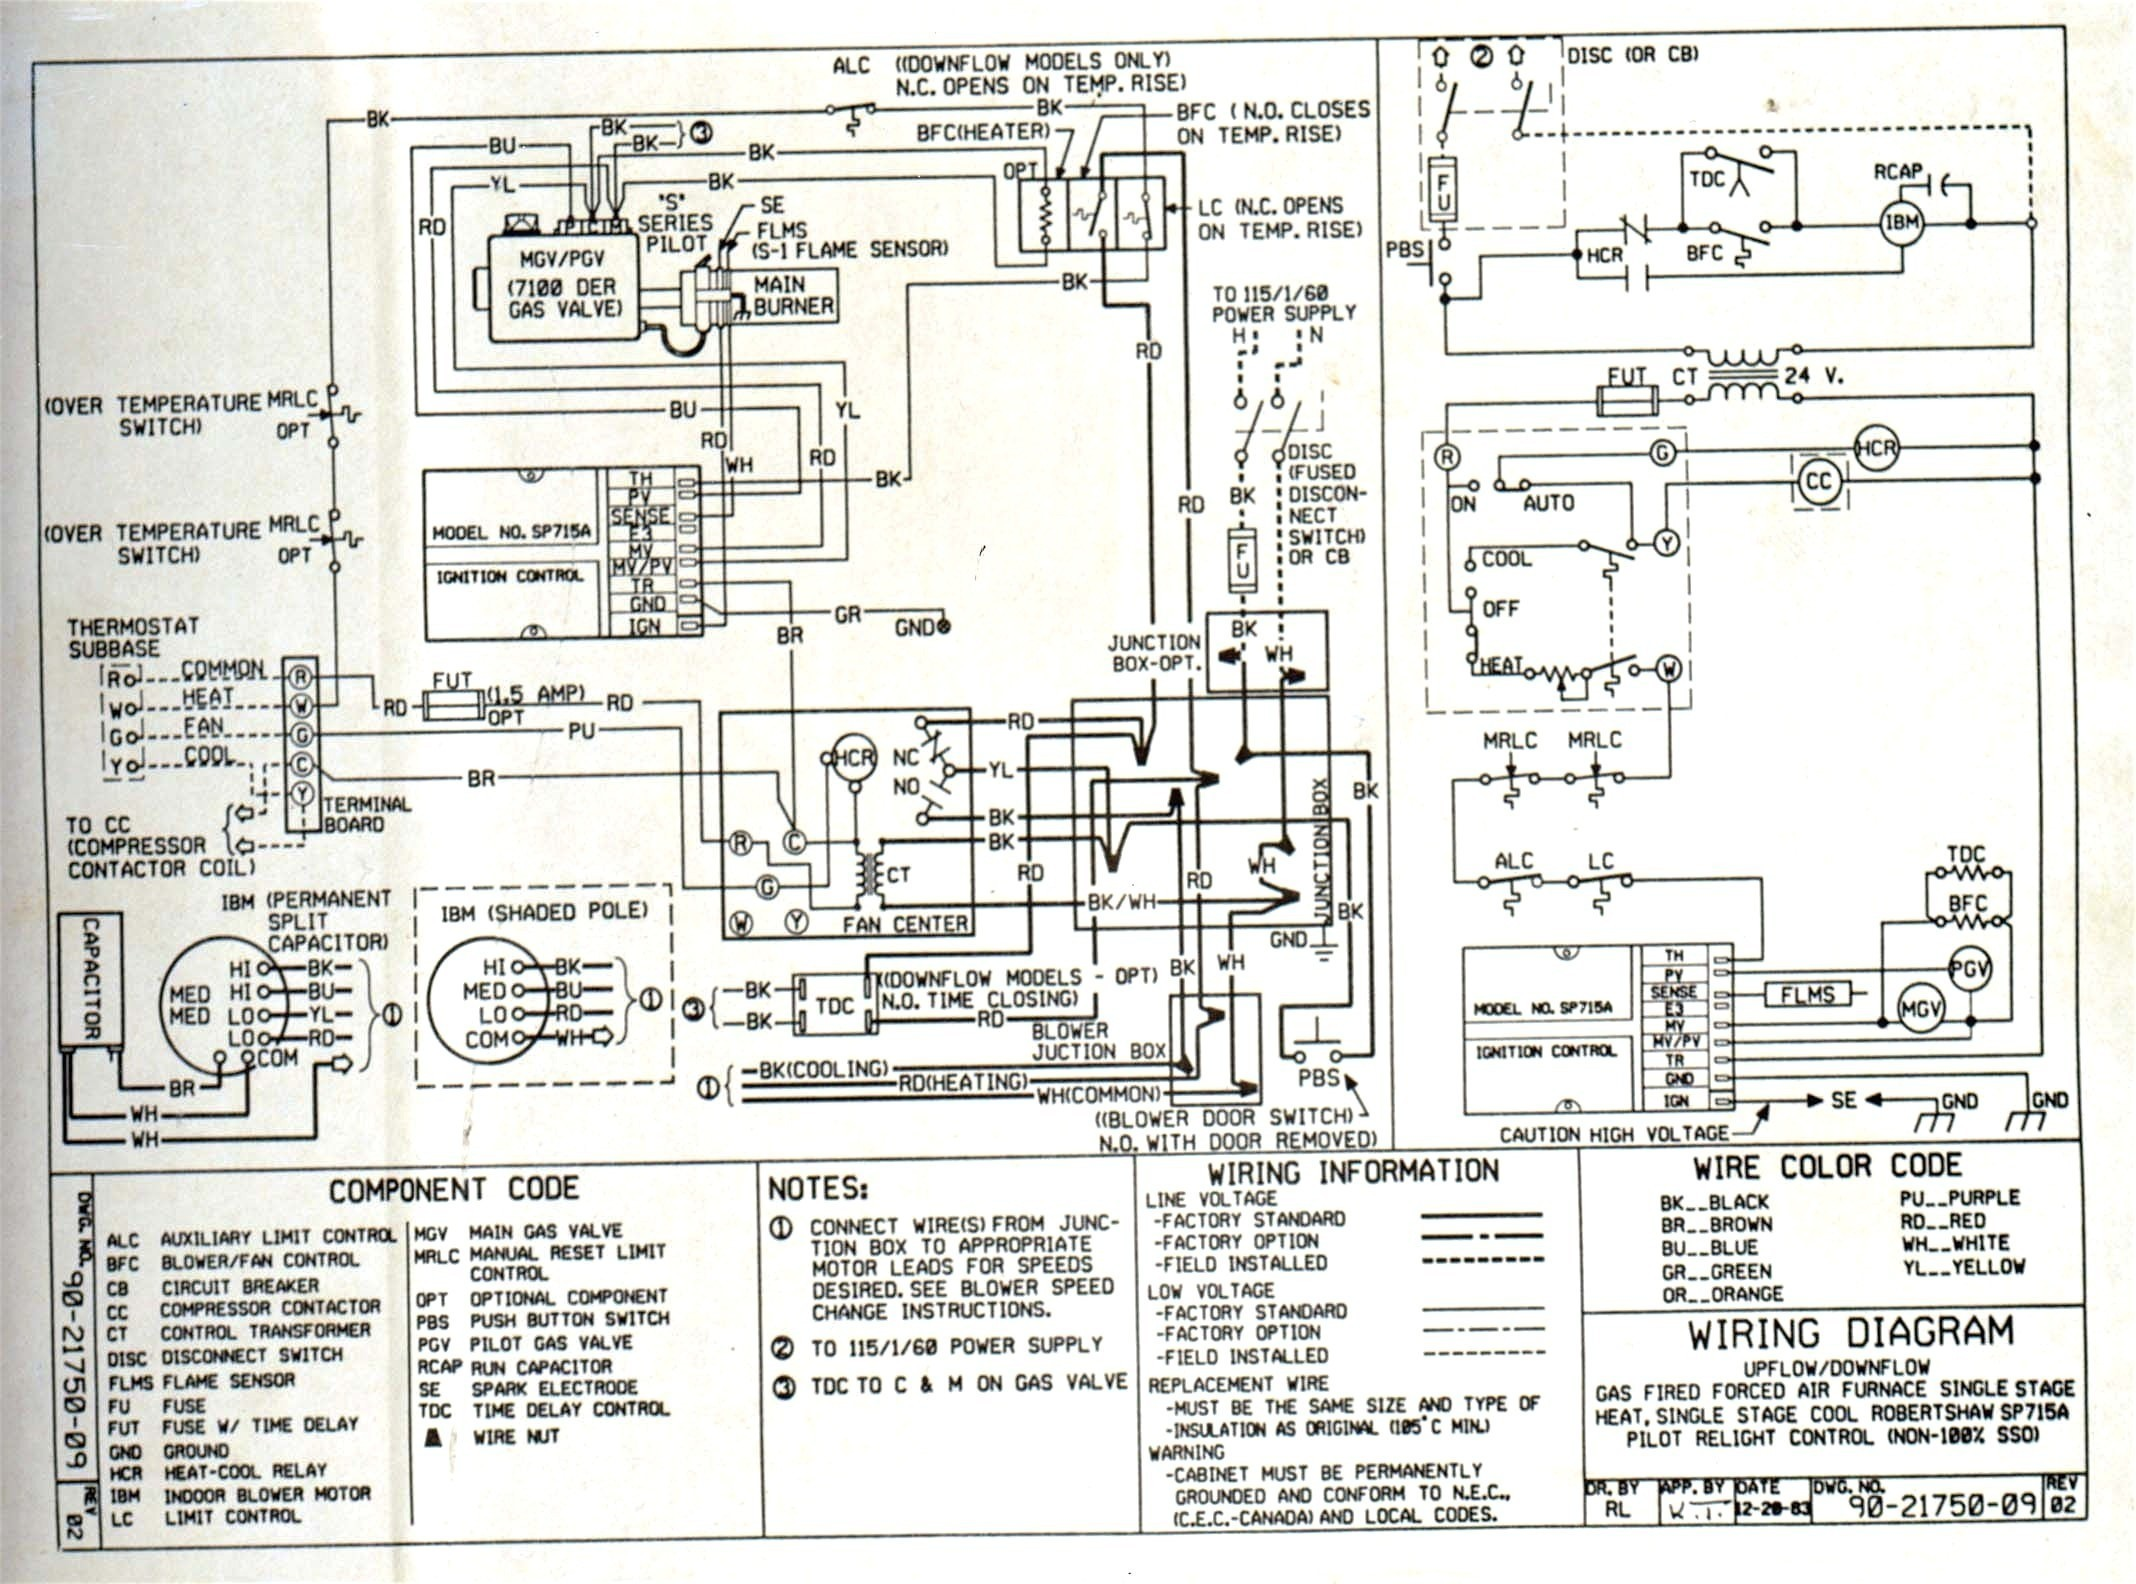 Buick Rendezvous Engine Diagram 2002 Buick Rendezvous Wiring Diagrams Simplified Shapes Jetta Ac Of Buick Rendezvous Engine Diagram